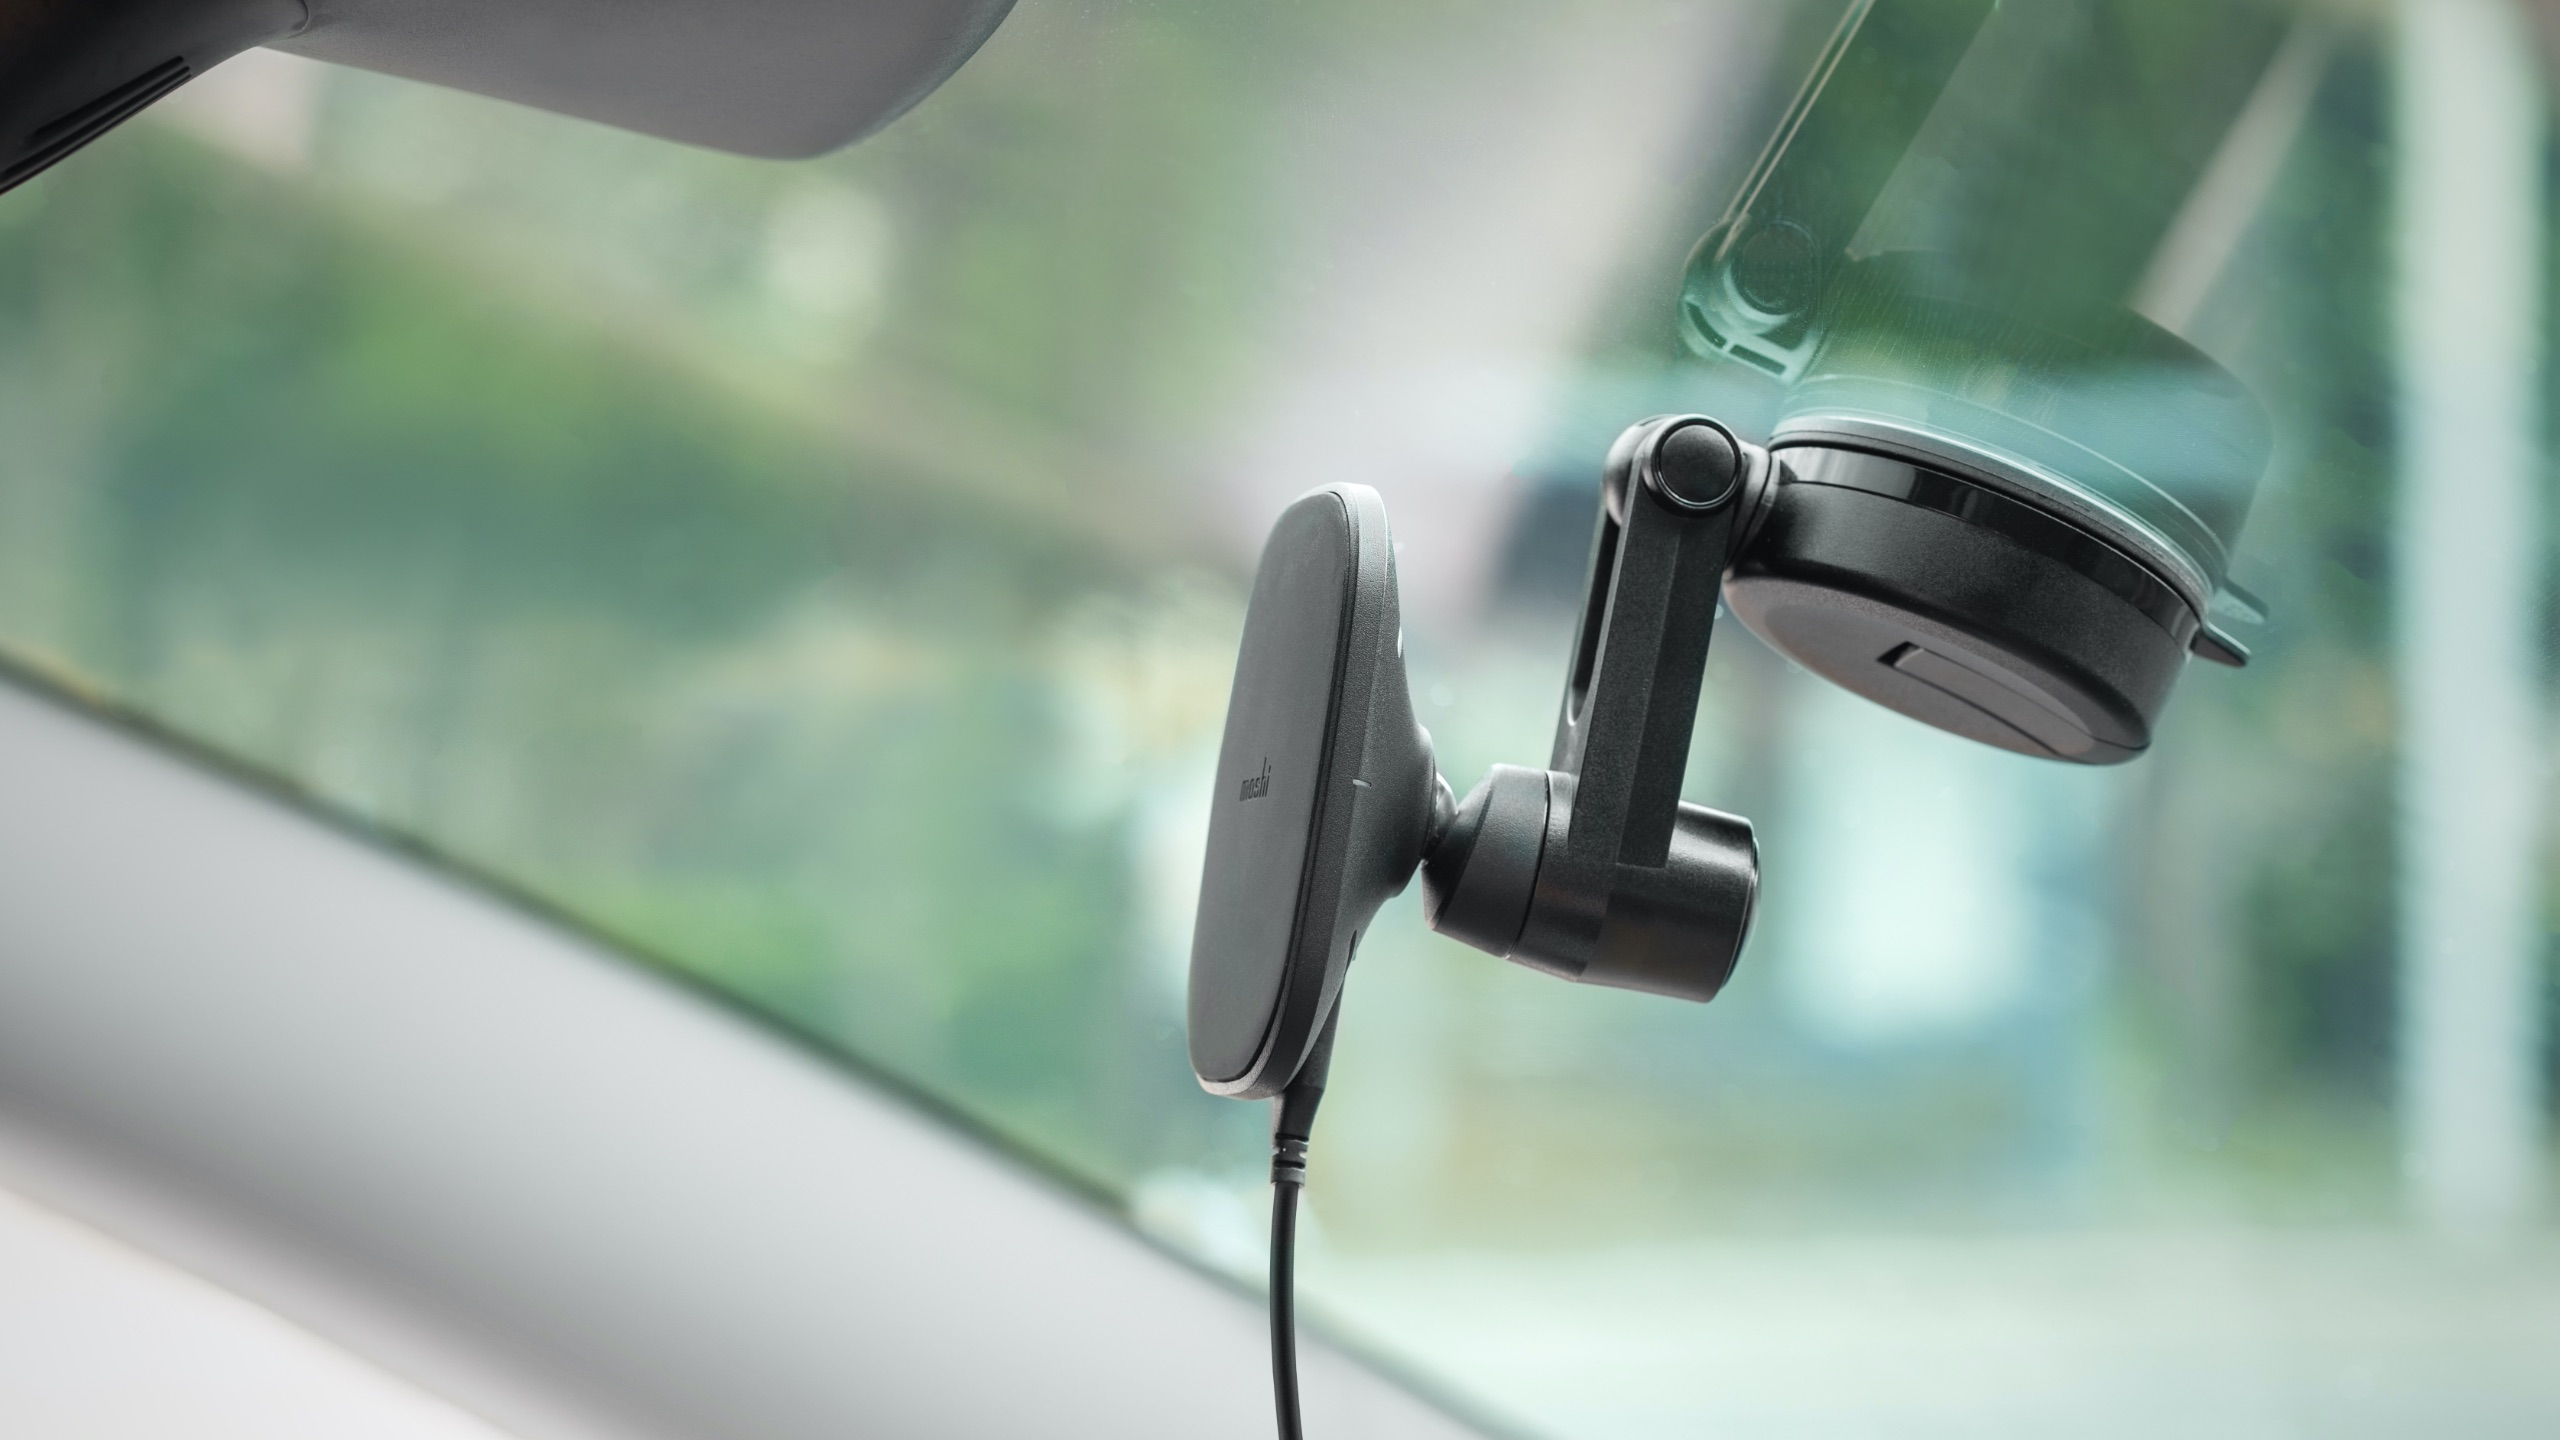 SnapTo Universal Car Mount with Wireless Charging-image